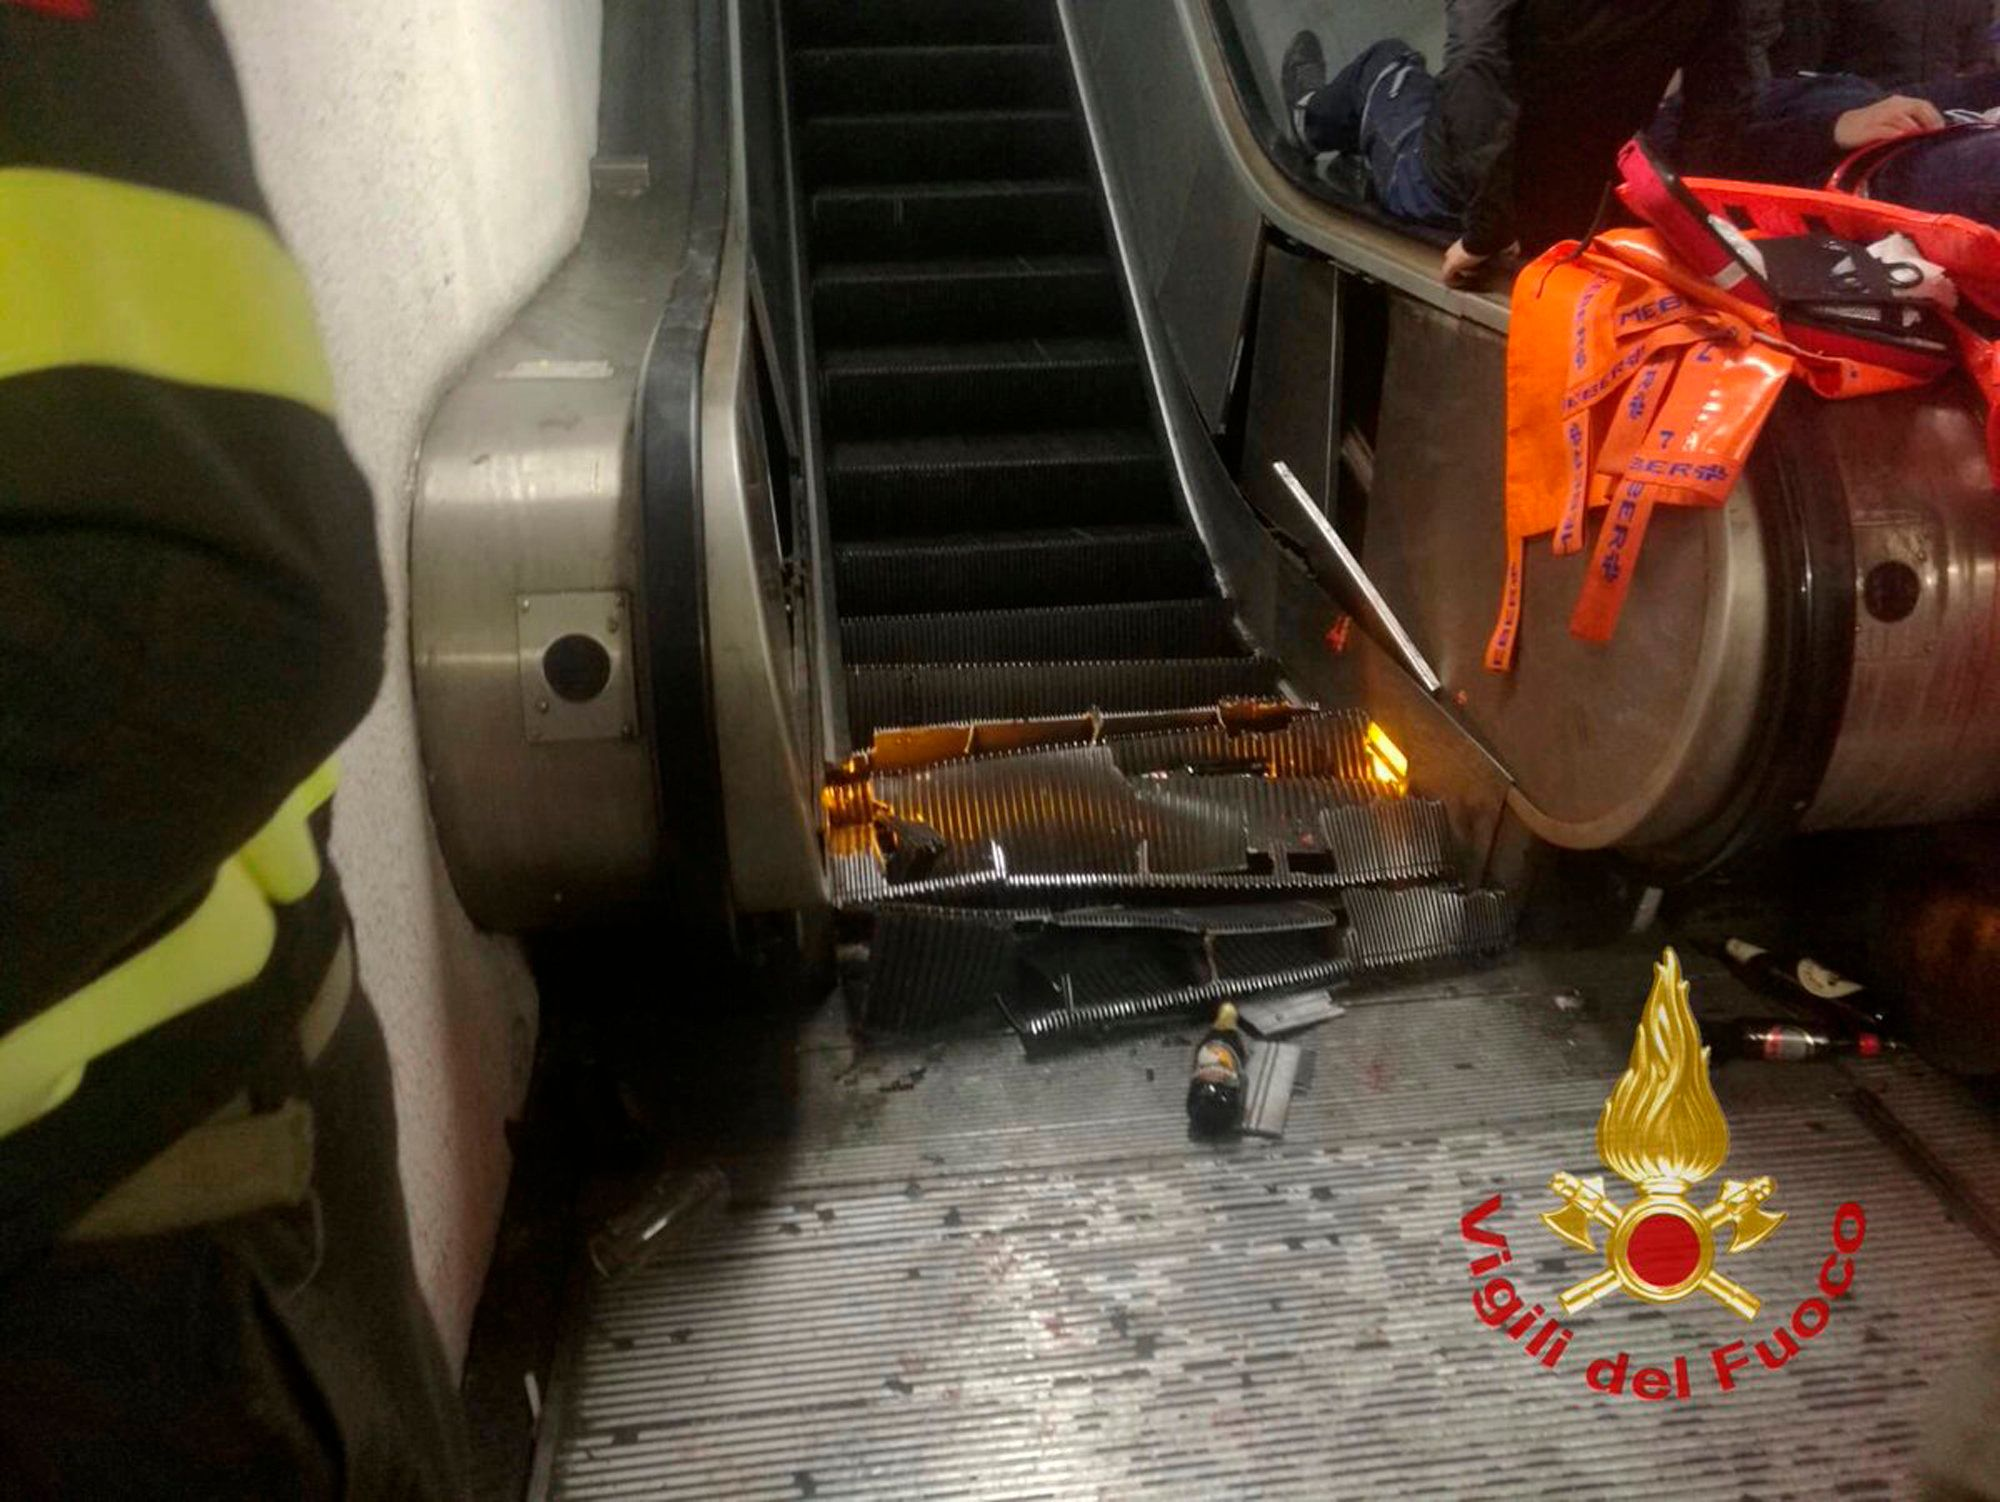 Many of the people hurt in an escalator accident in Rome on Tuesday were reportedly fans of CSKA Moscow who were in town for